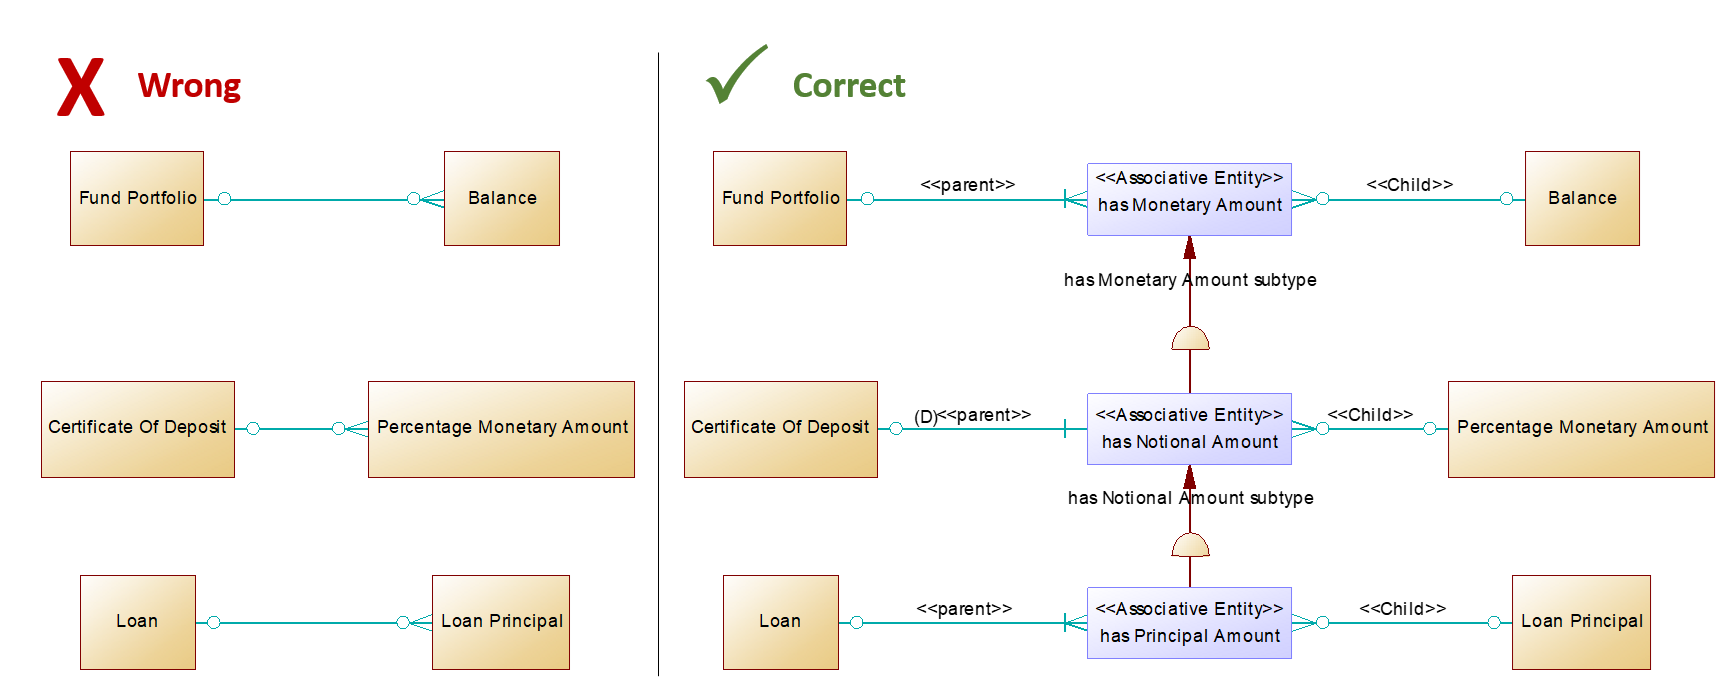 Has Monetary Amount Hierarchy (wrong and correct)